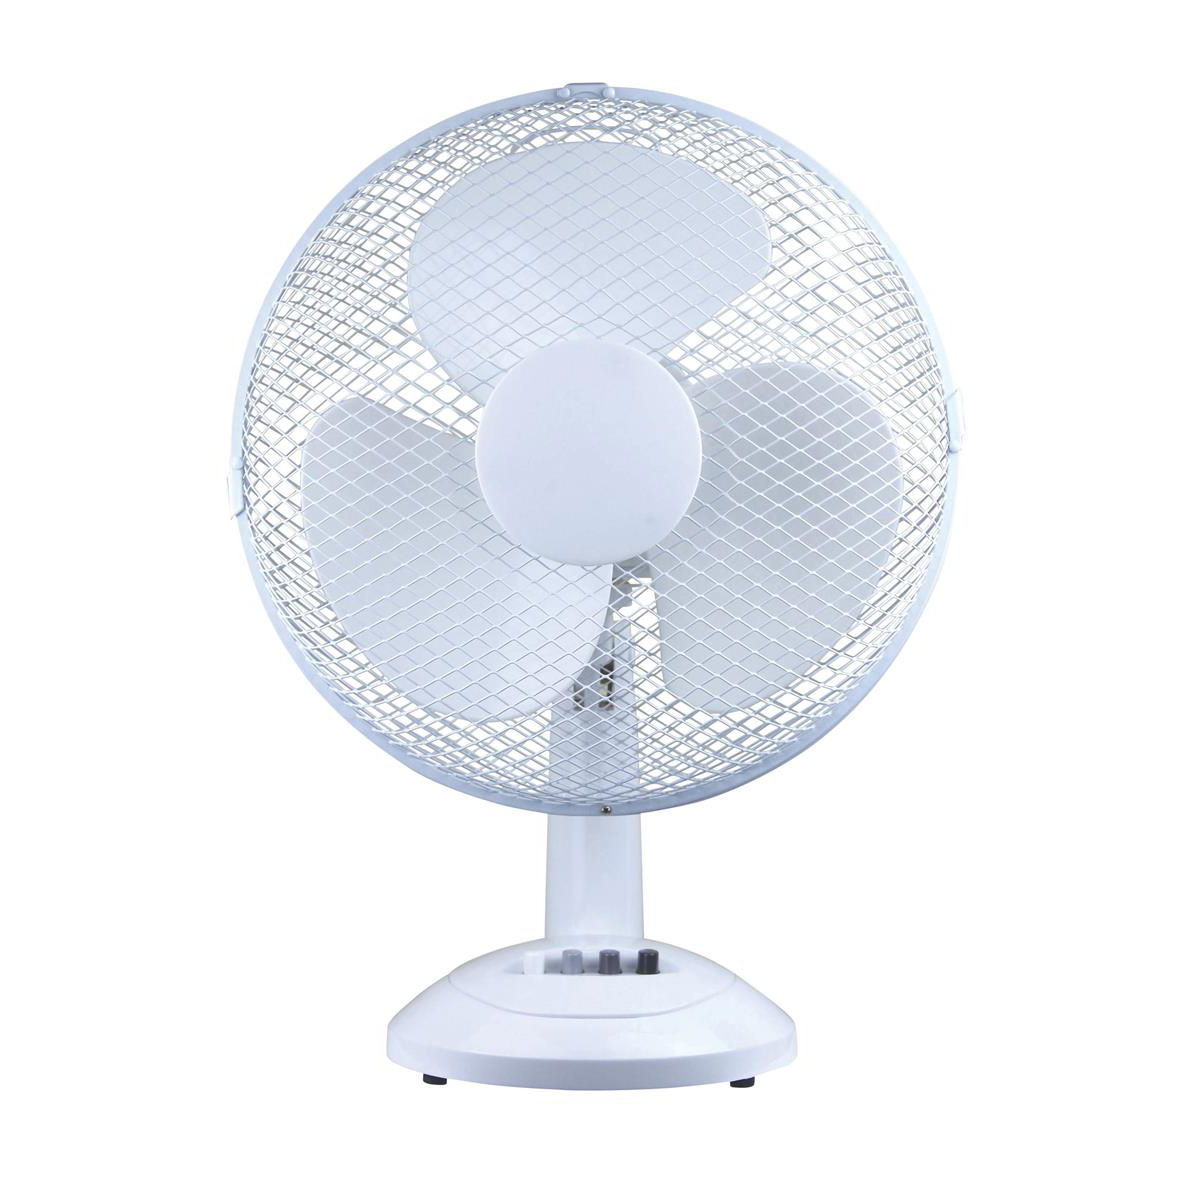 Desk Fans 5 Star Facilities Desk Fan 16 Inch 90deg Oscillating with Tilt & Lock 3-Speed H600mm Dia.406mm White